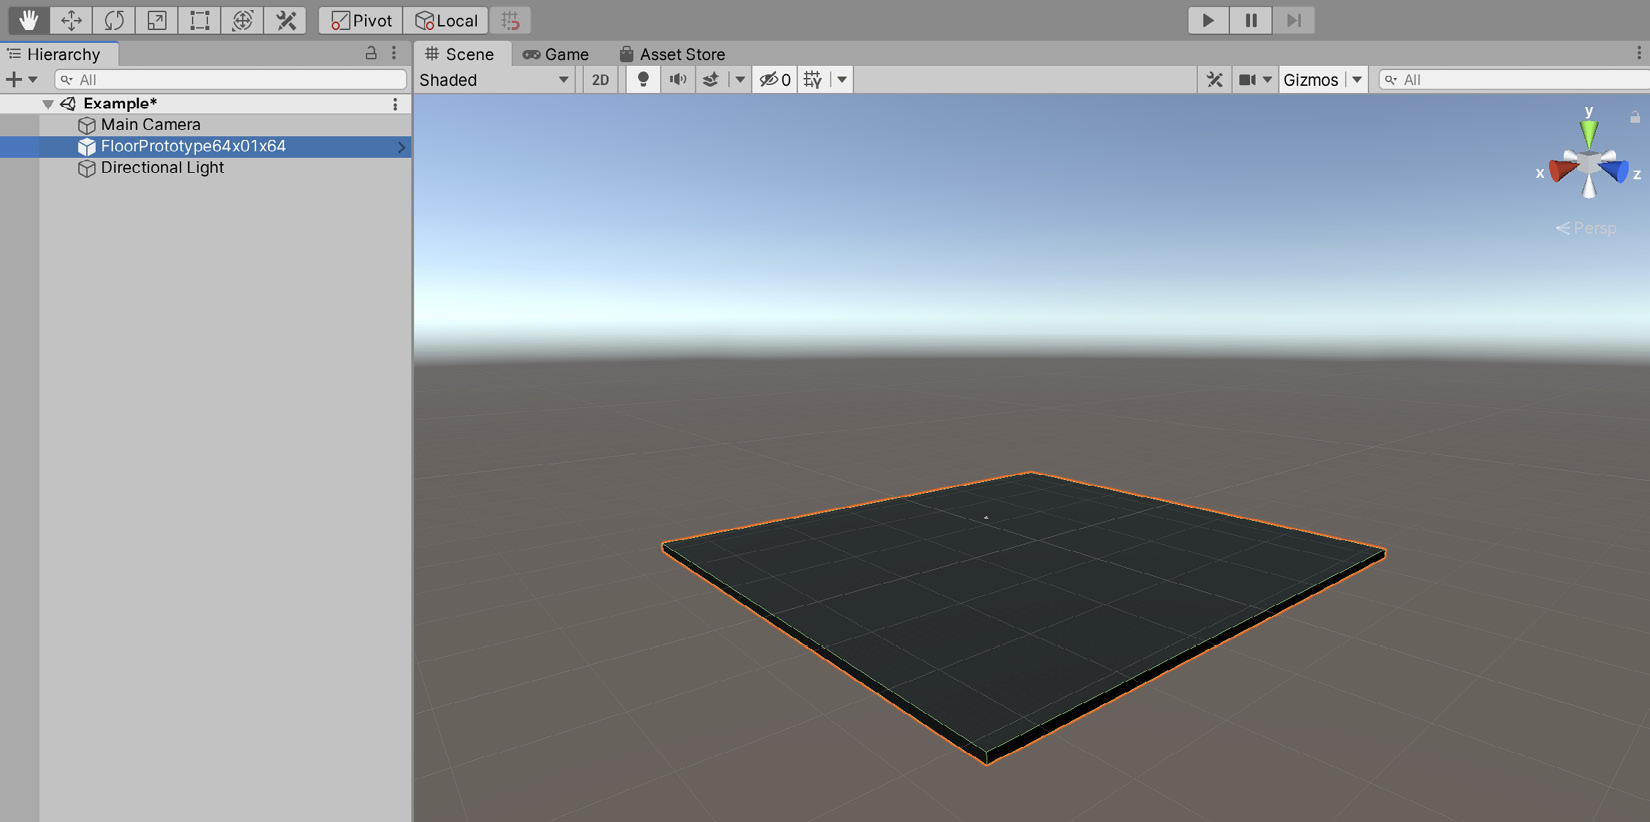 Figure 1.17 – Dragging and dropping mesh assets from the  Project panel to the Scene view will add them to the scene